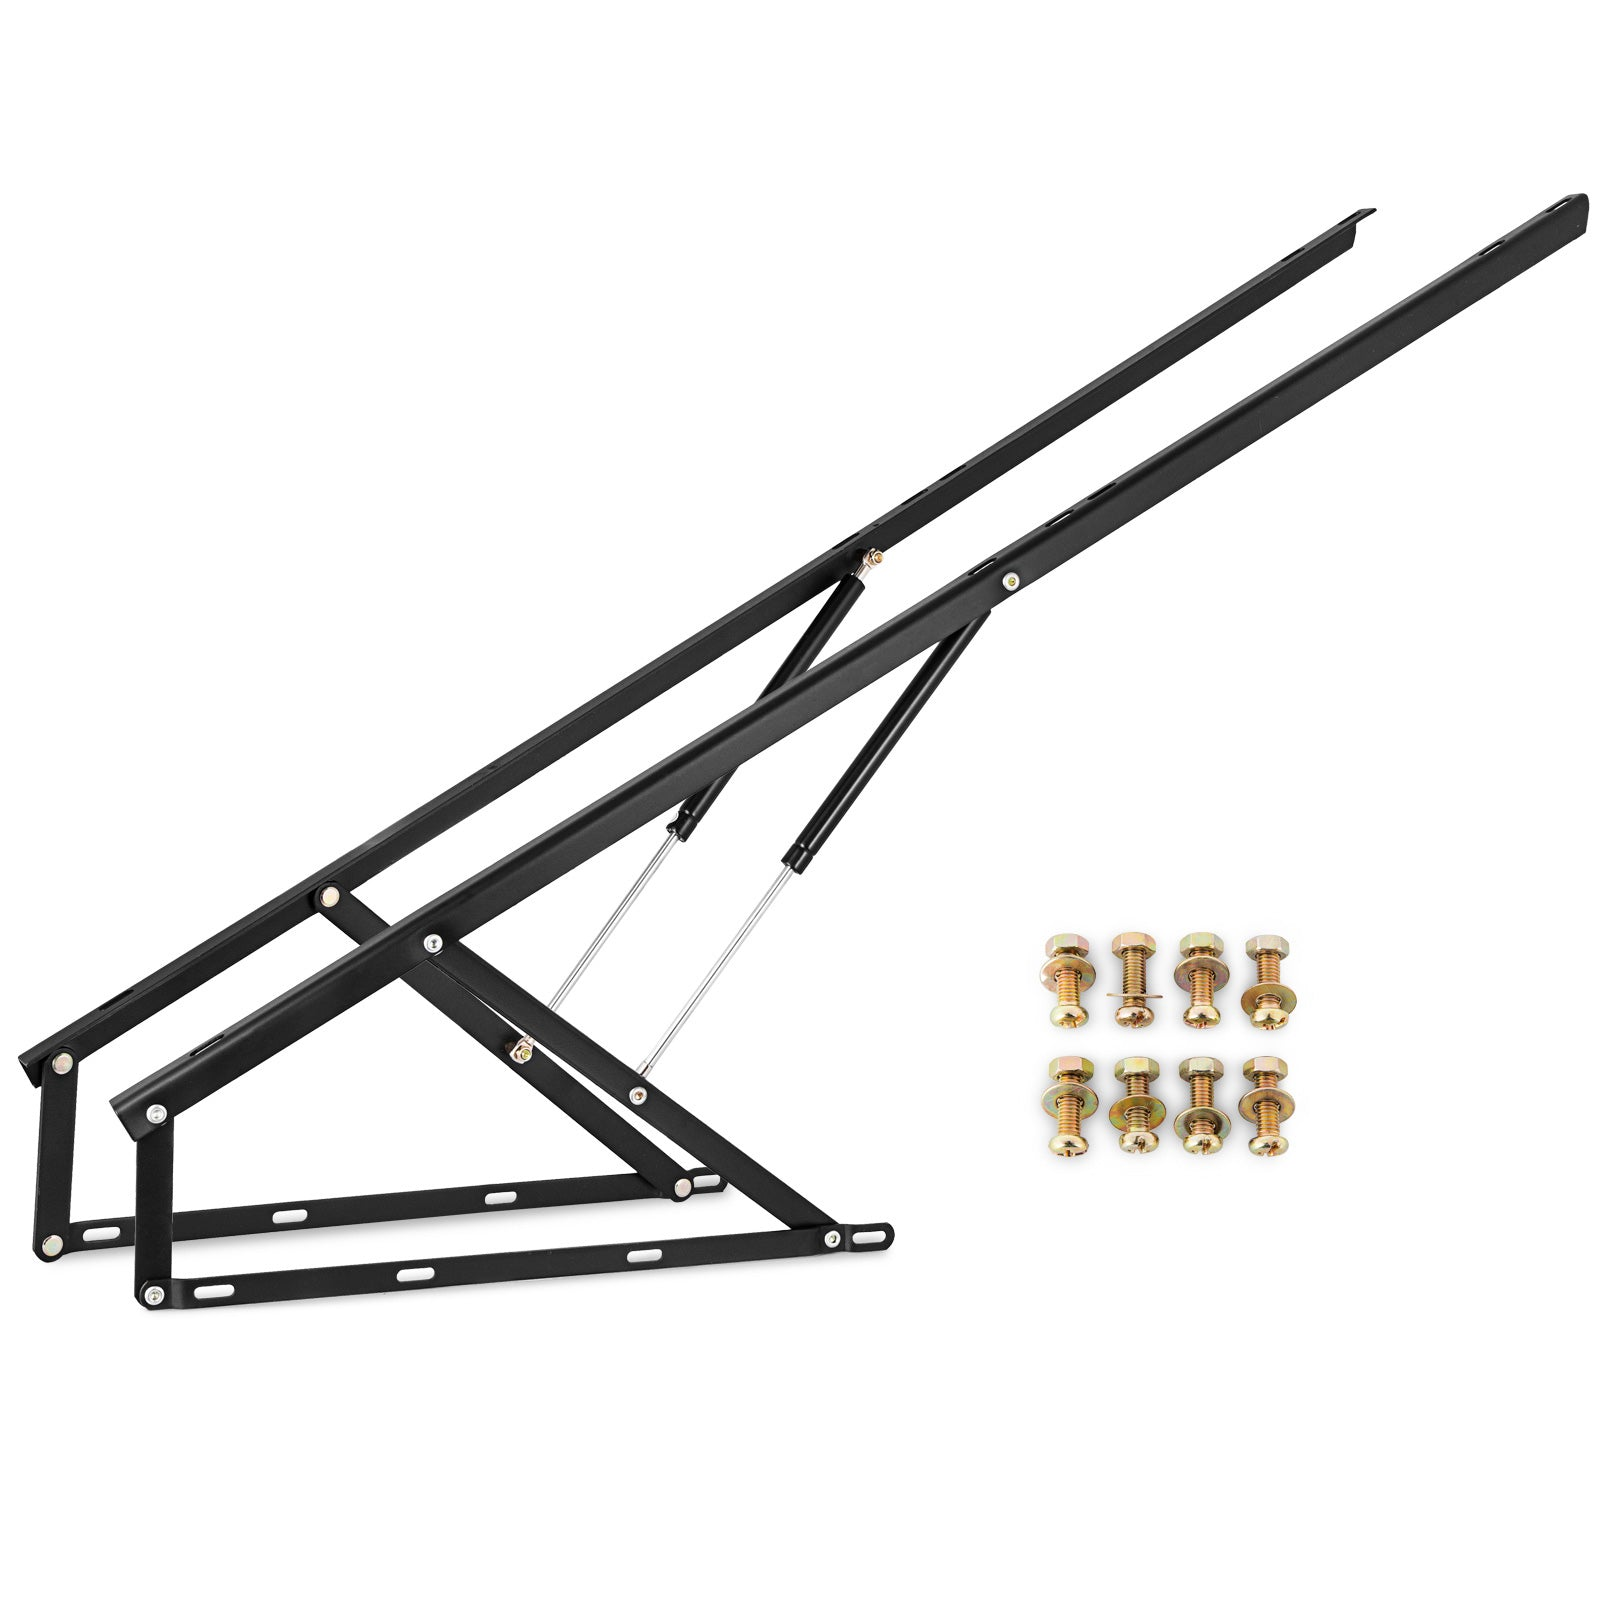 "60"" Bed Lift Hydraulic Mechanisms Kits For Sofa Bed Storage Oriented Sturdy"